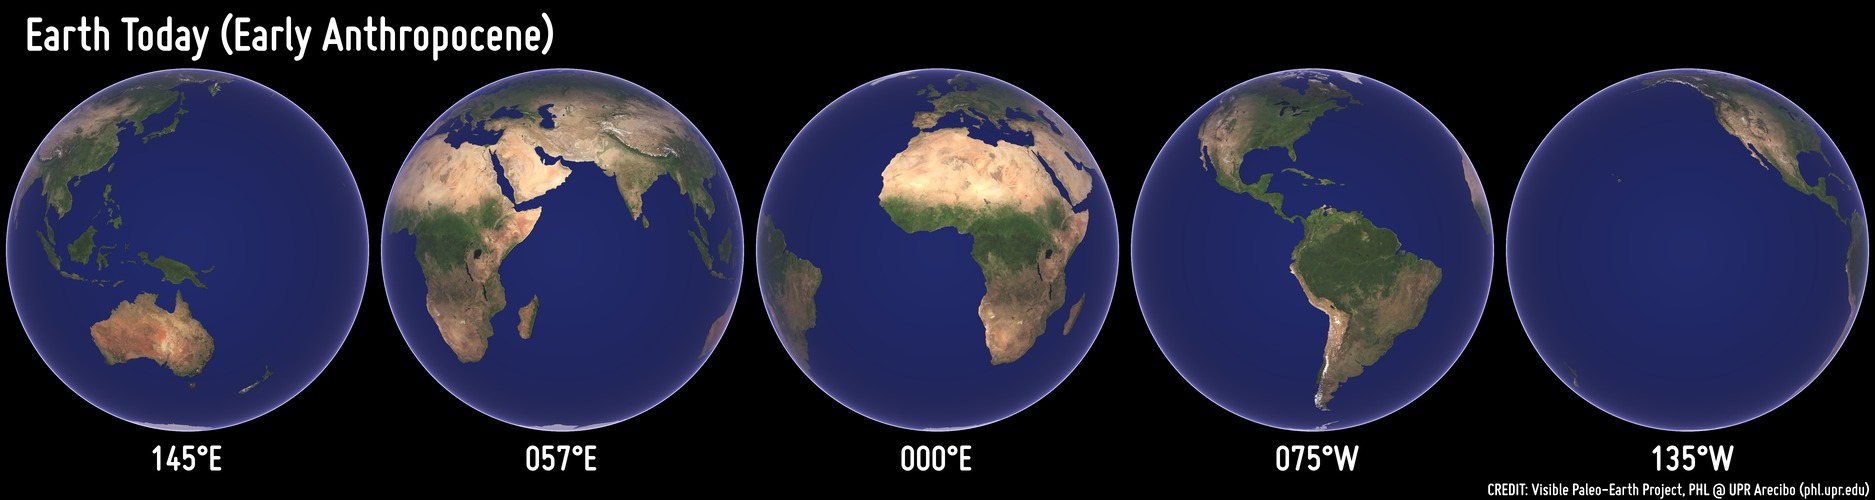 What Would Earth Look Like From A Satellite Million Of Years Ago - Today satellite image of world